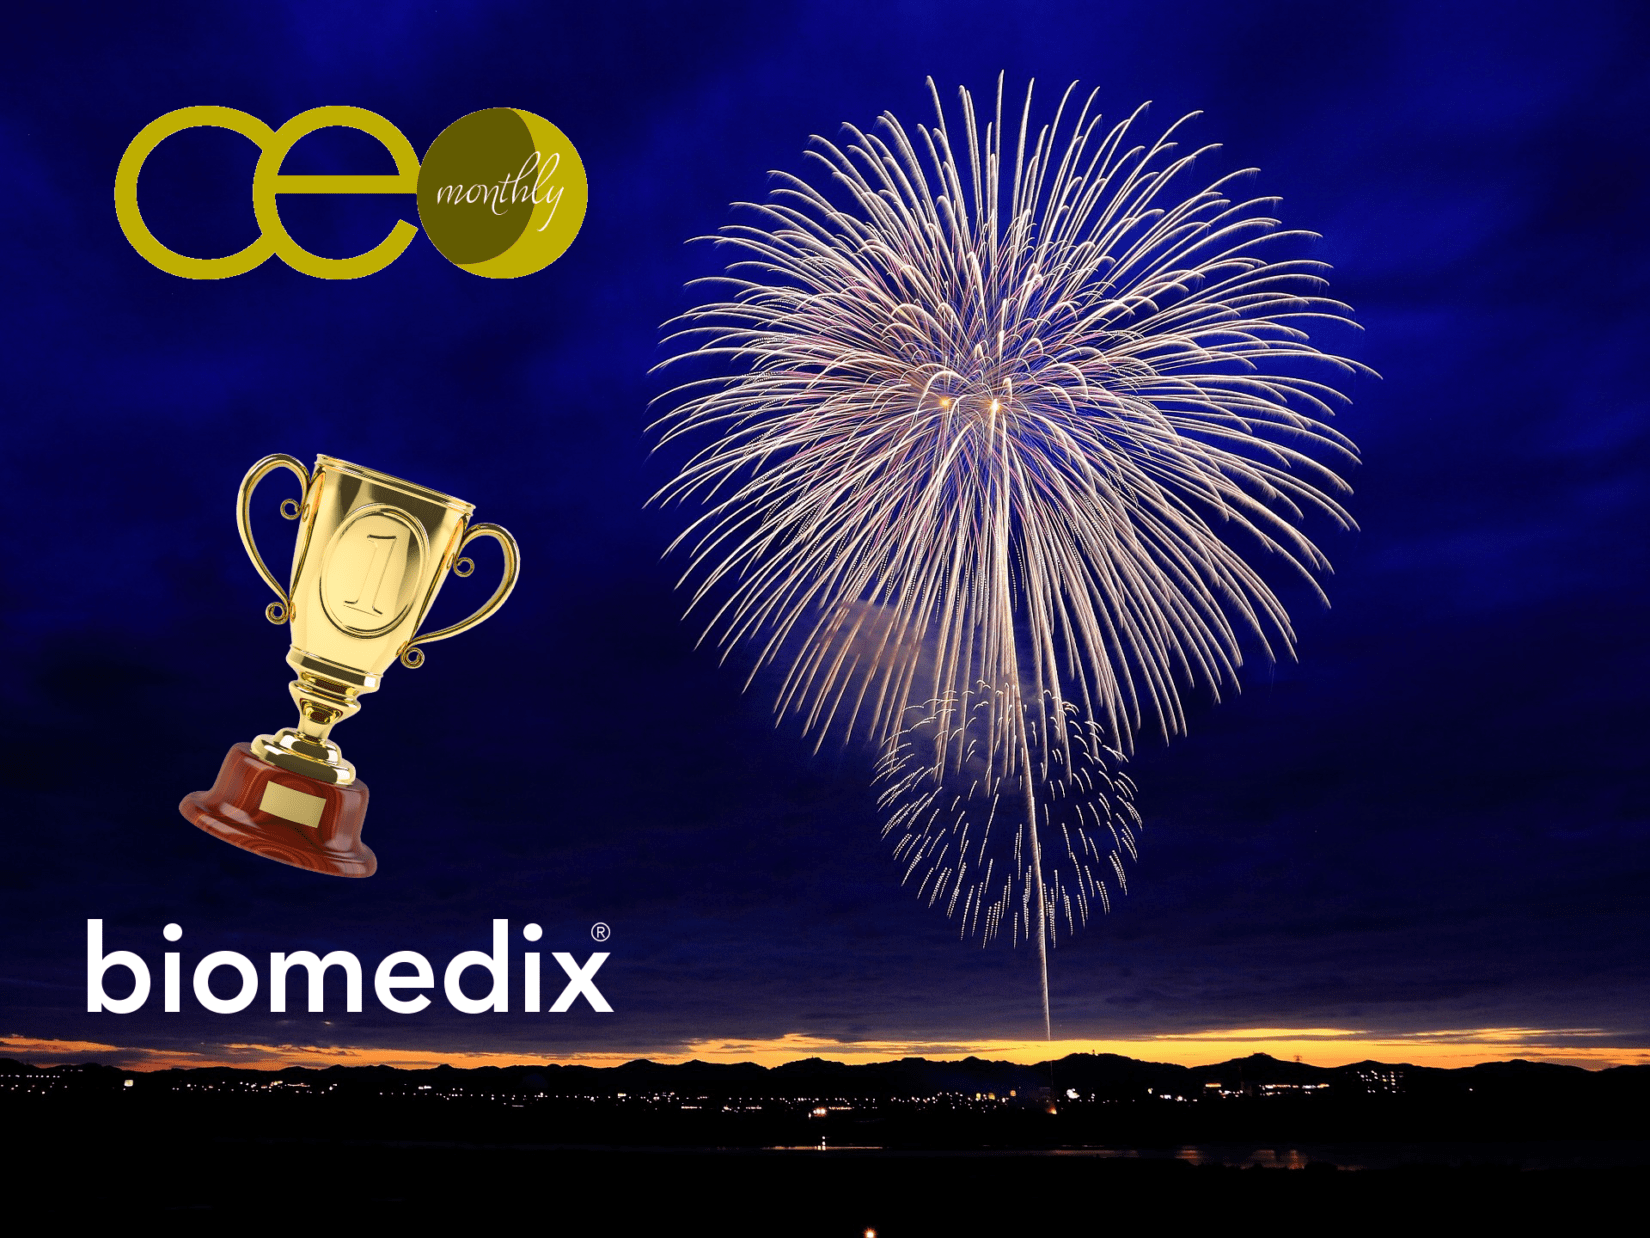 Biomedix wins 2x CEO Monthly Awards